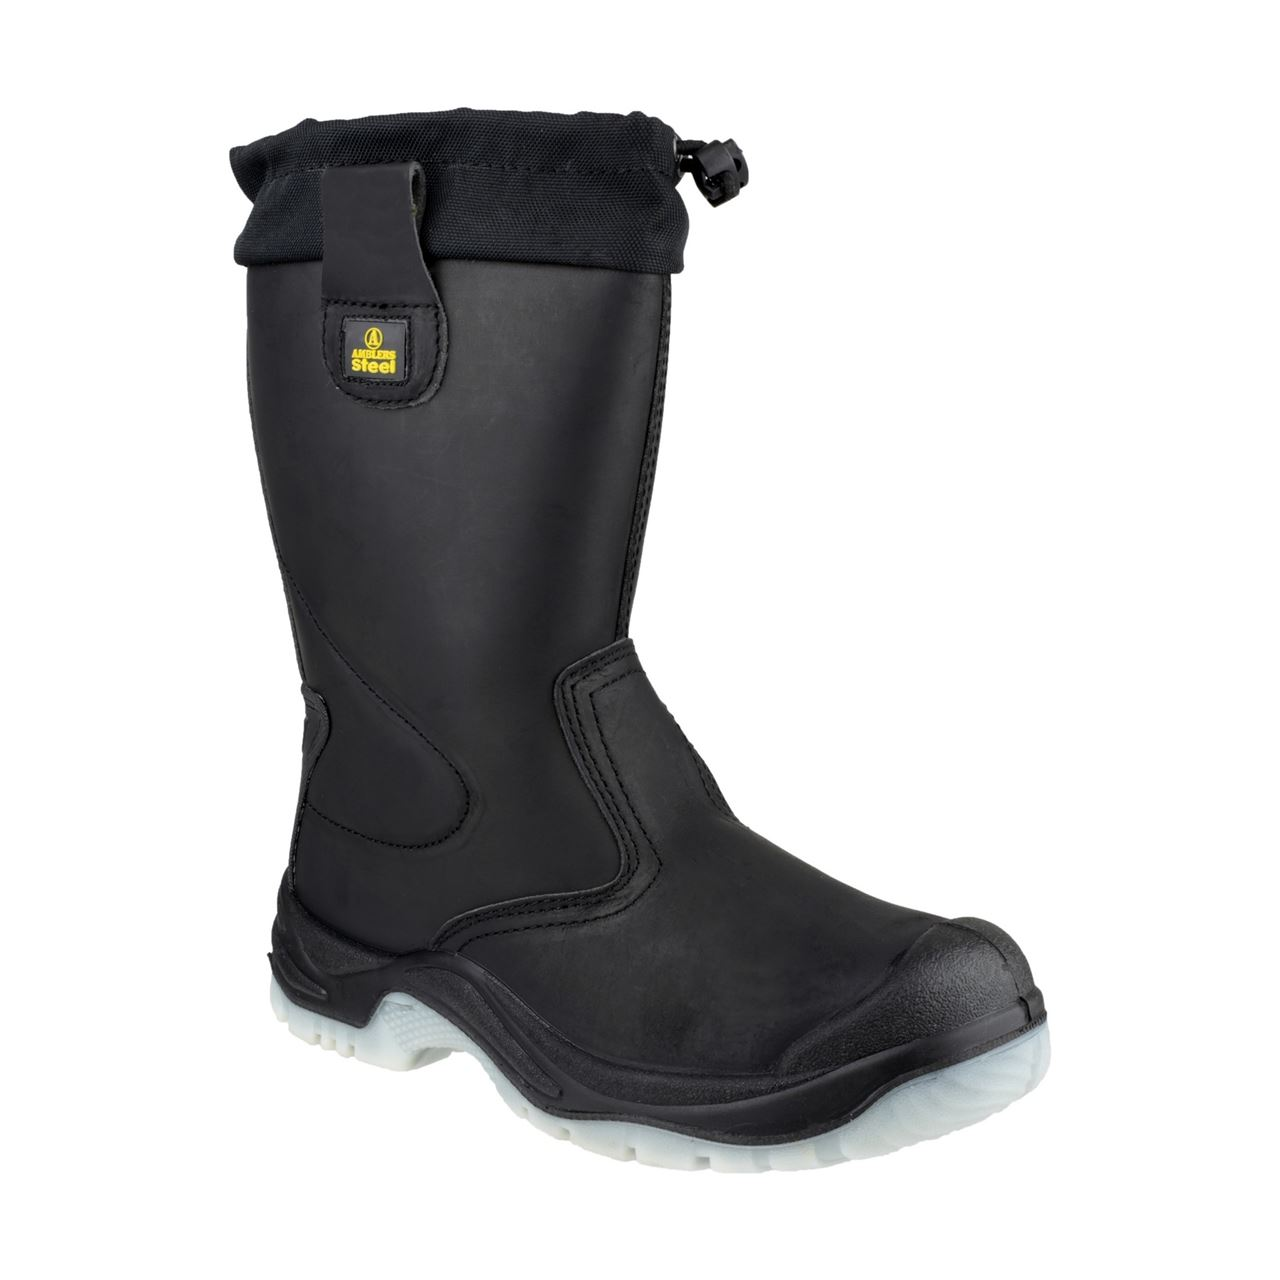 32e59dc1d08 Safety Rigger Boots   Waterproof Rigger Boots